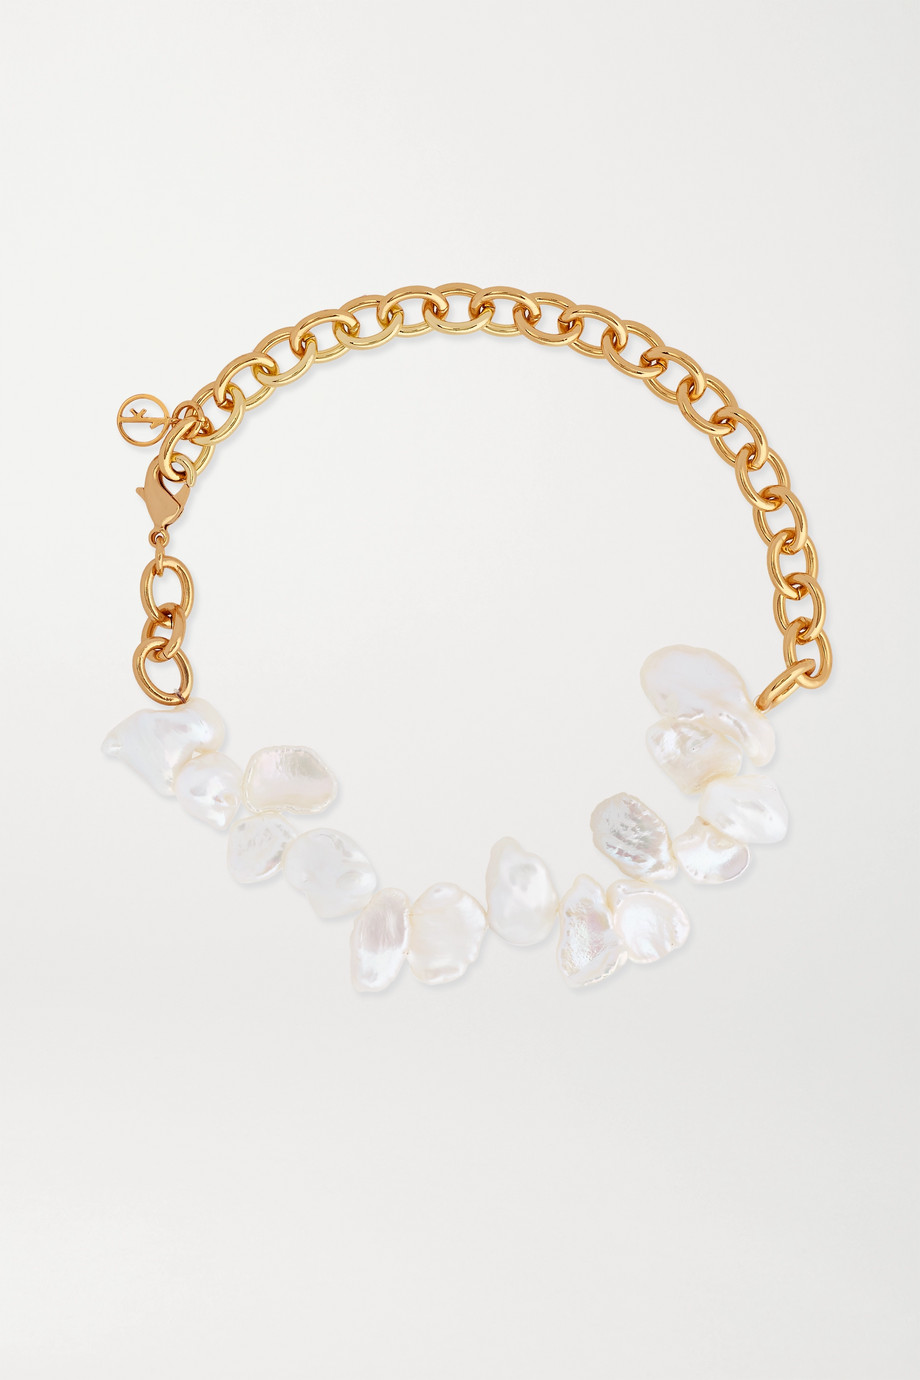 Anissa Kermiche Two Faced Shelley gold-plated pearl anklet